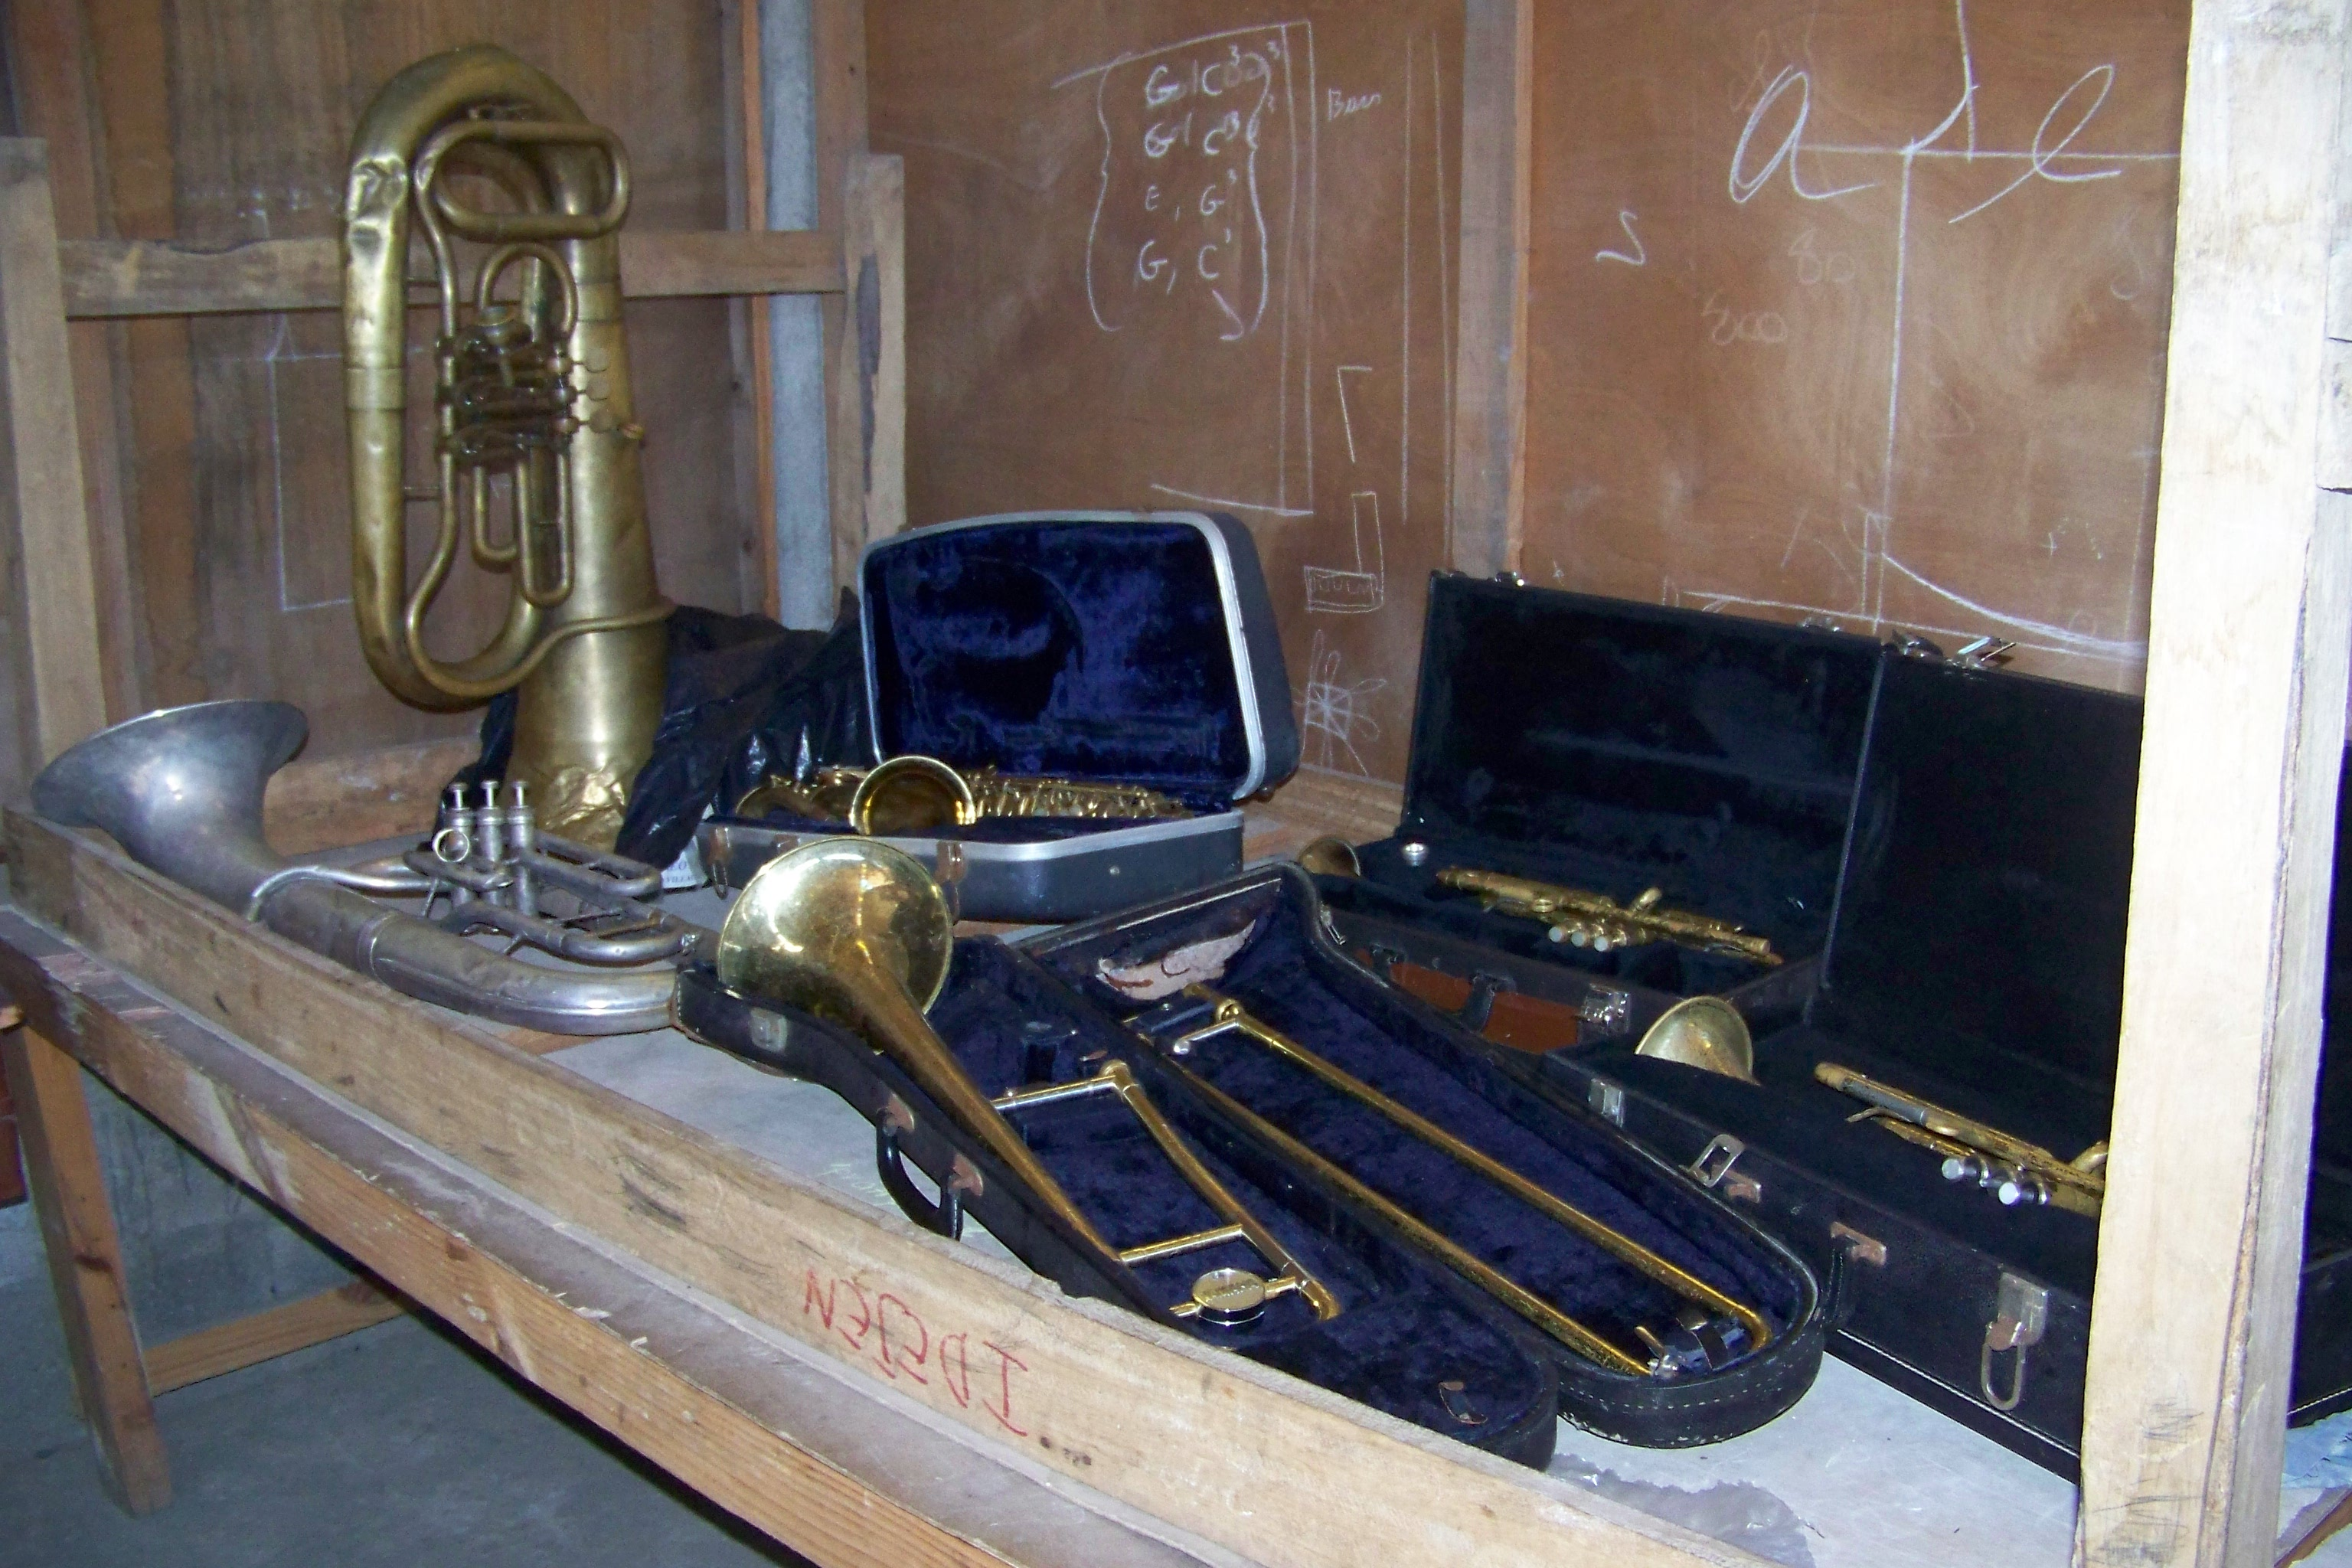 instruments donated by Friend of Borgne